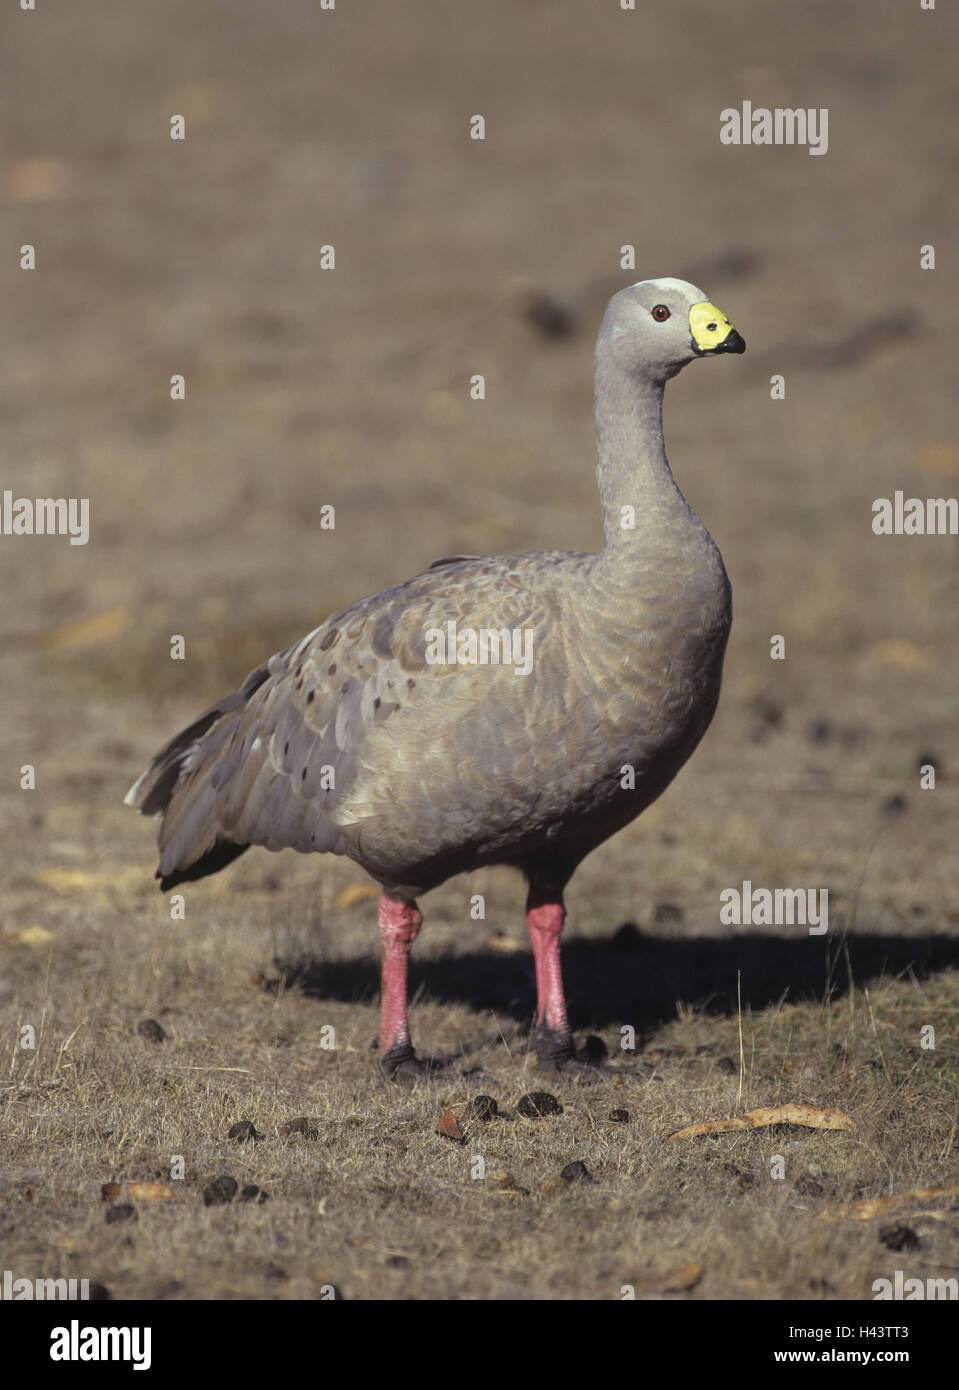 Australia, meadow, poultry goose, Cereopsis novaehollandiae, Wildlife, animal world, animal, bird, goose, Hoendergans, - Stock Image